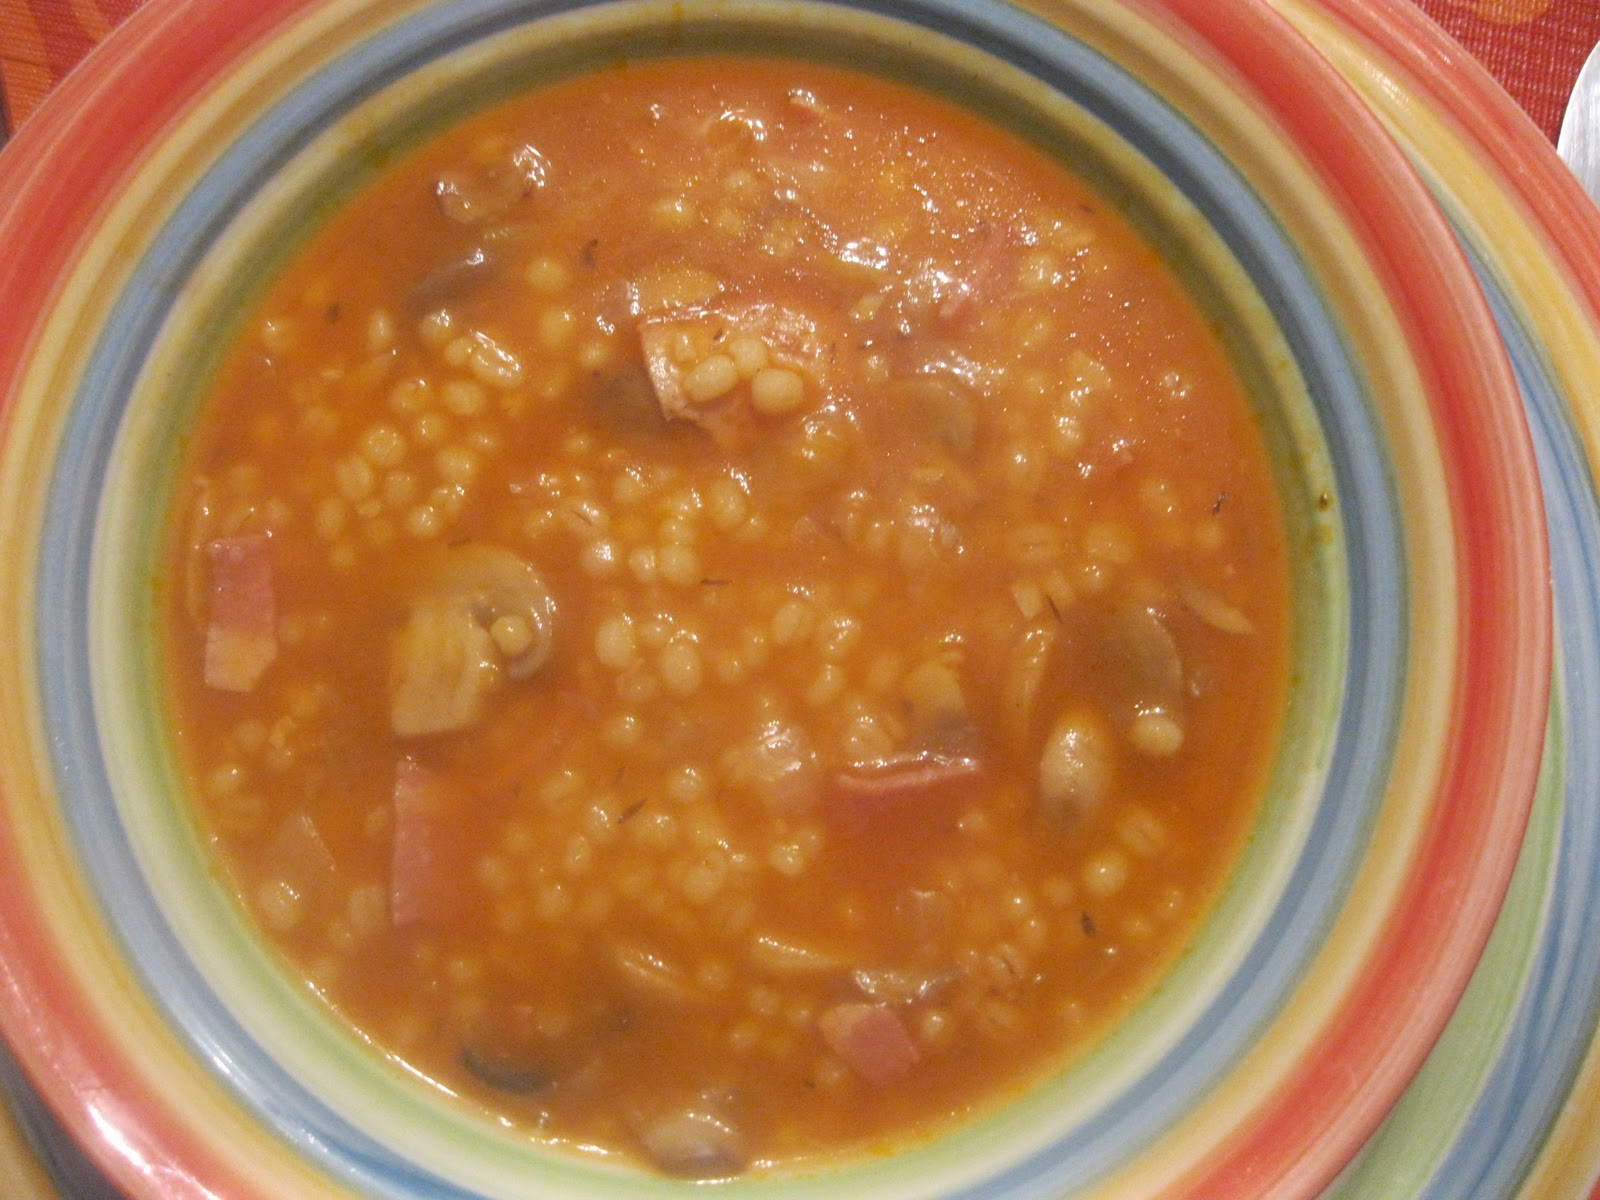 Feeding your family well: Quick Mushroom Barley Soup and Salad